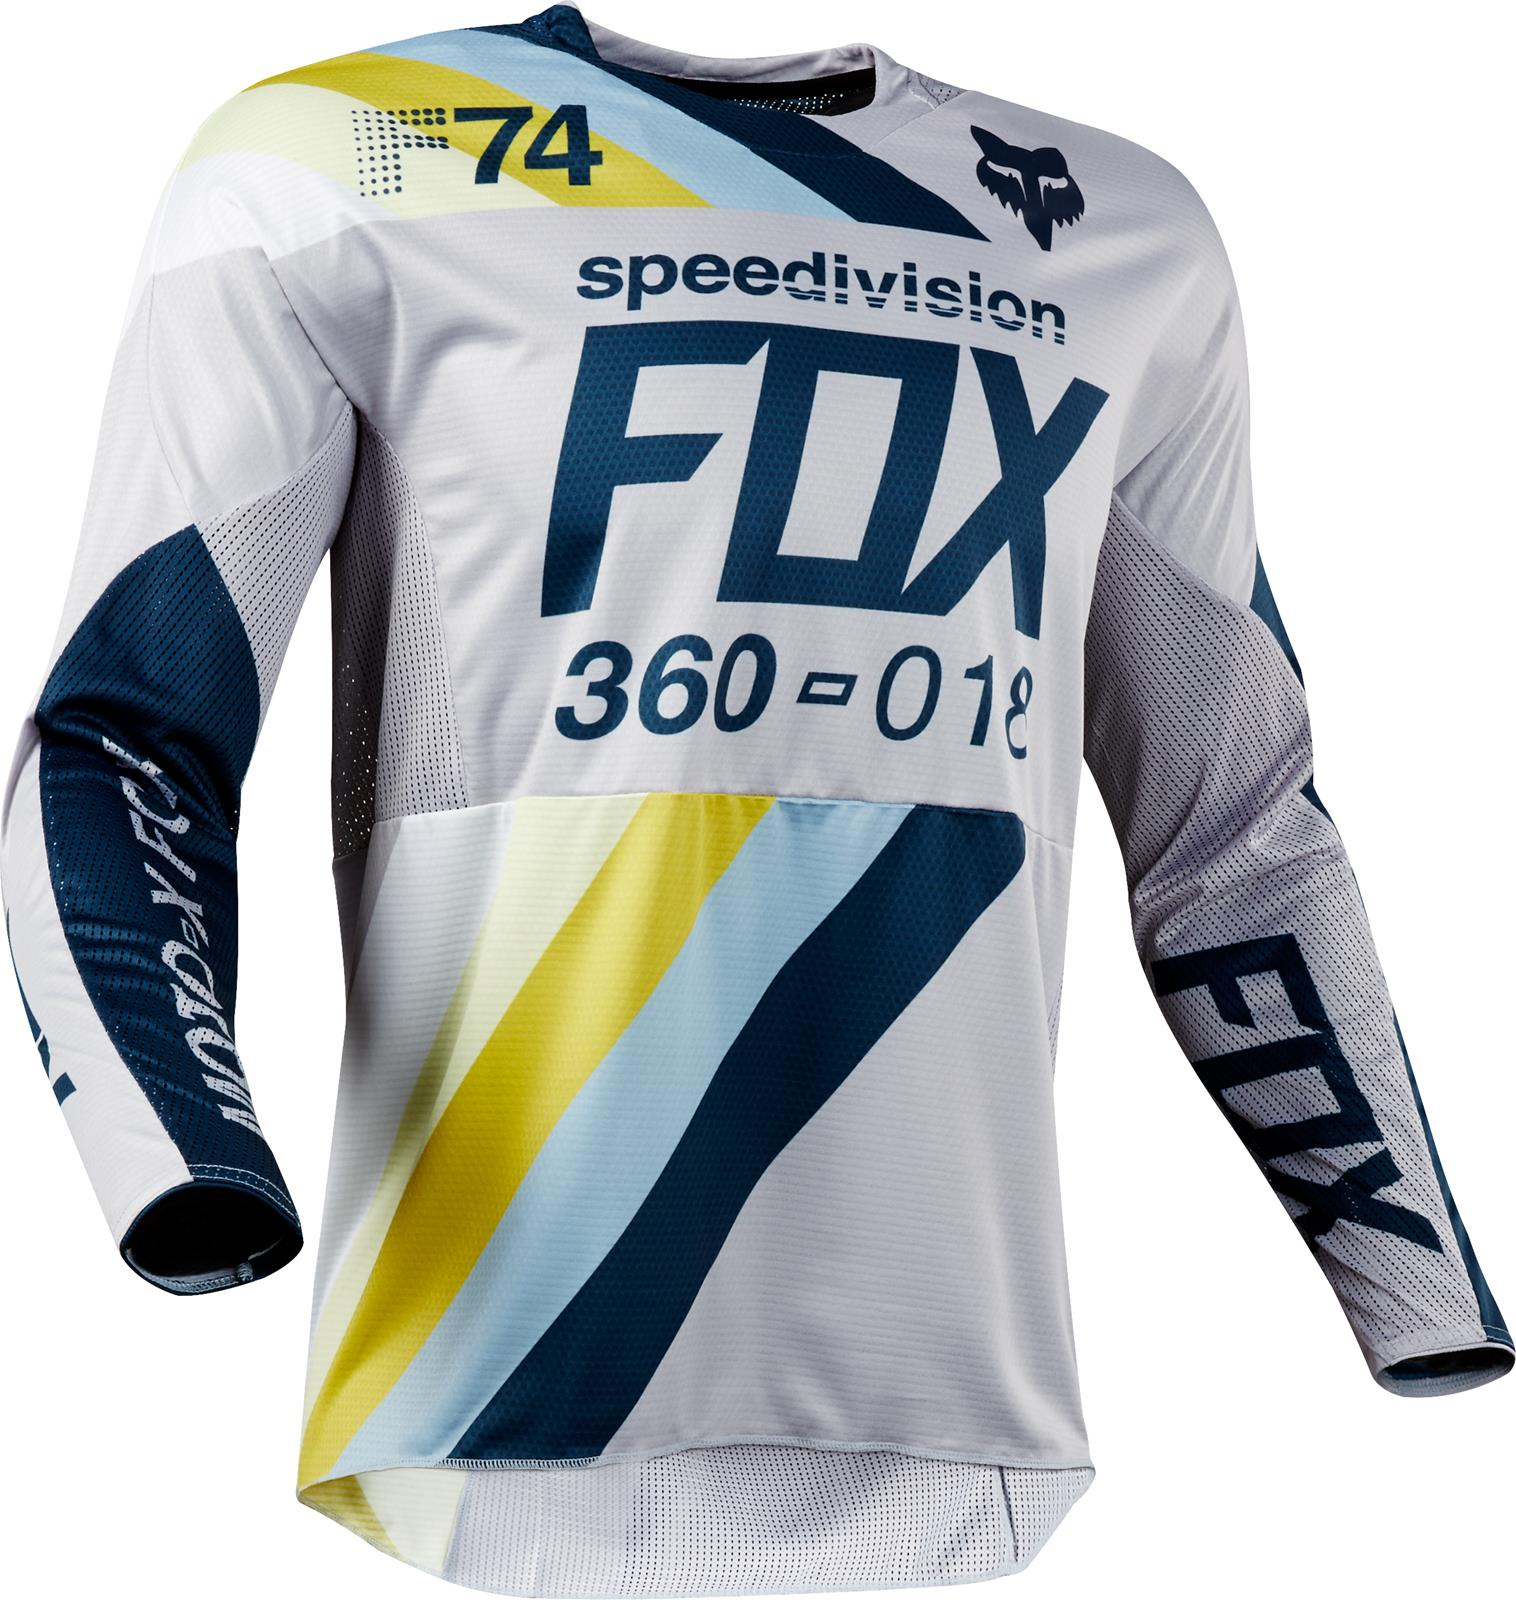 6288c339d Fox Racing 2018 360 Draftr Jerseys 19418-097-M - Free Shipping on Orders  Over  99 at Summit Racing